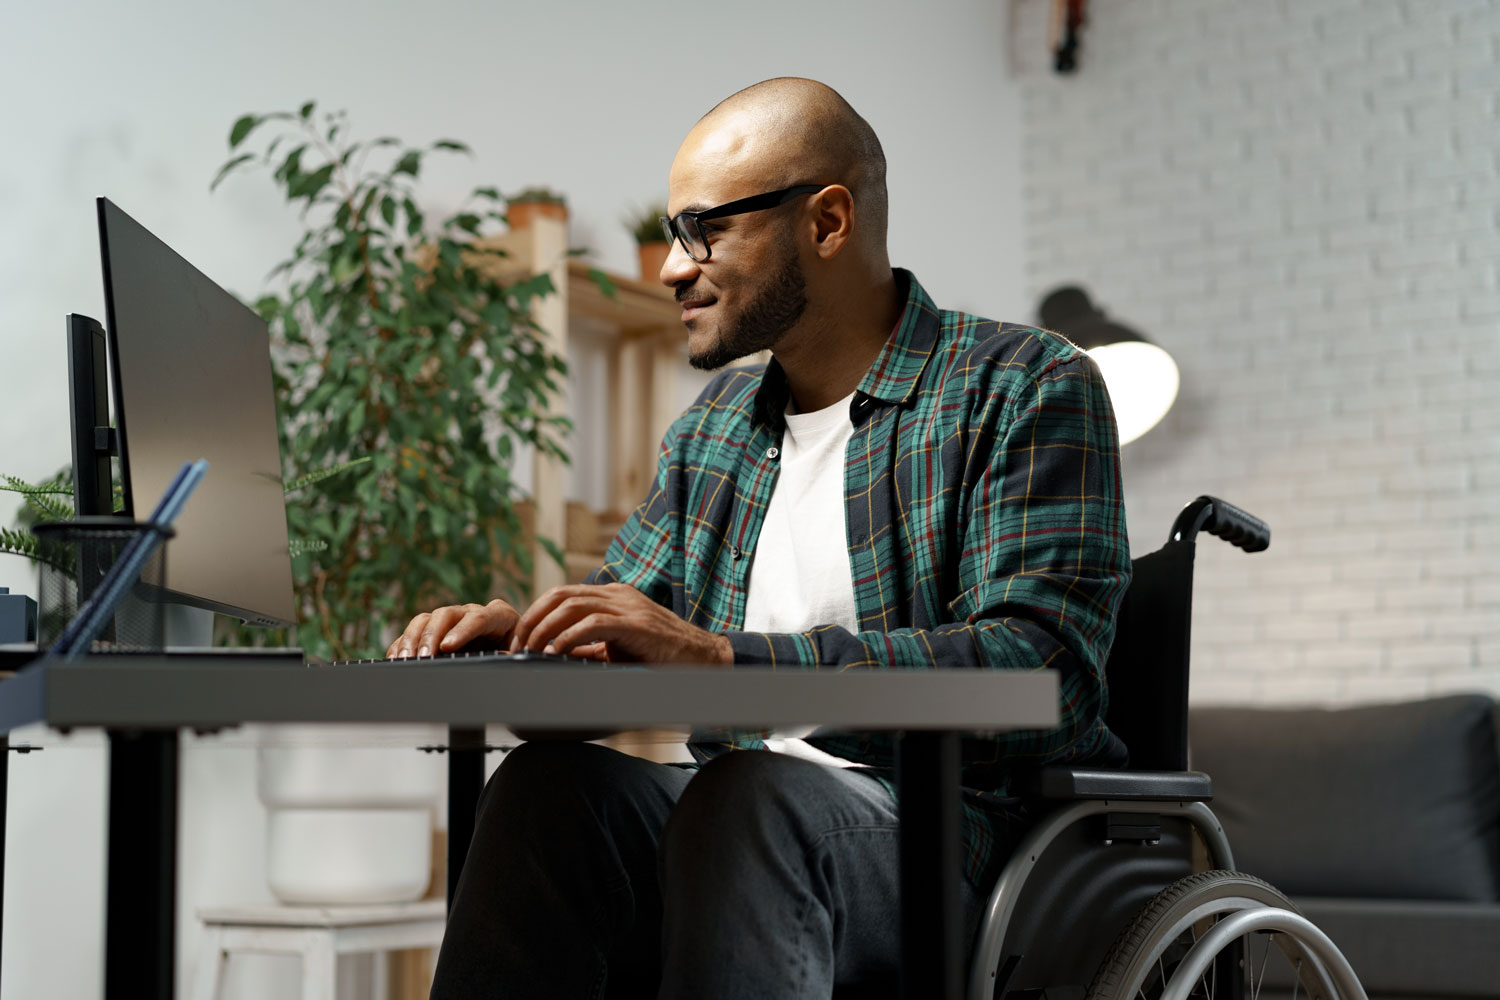 Disabled black man searching for job opportunities online while at home.